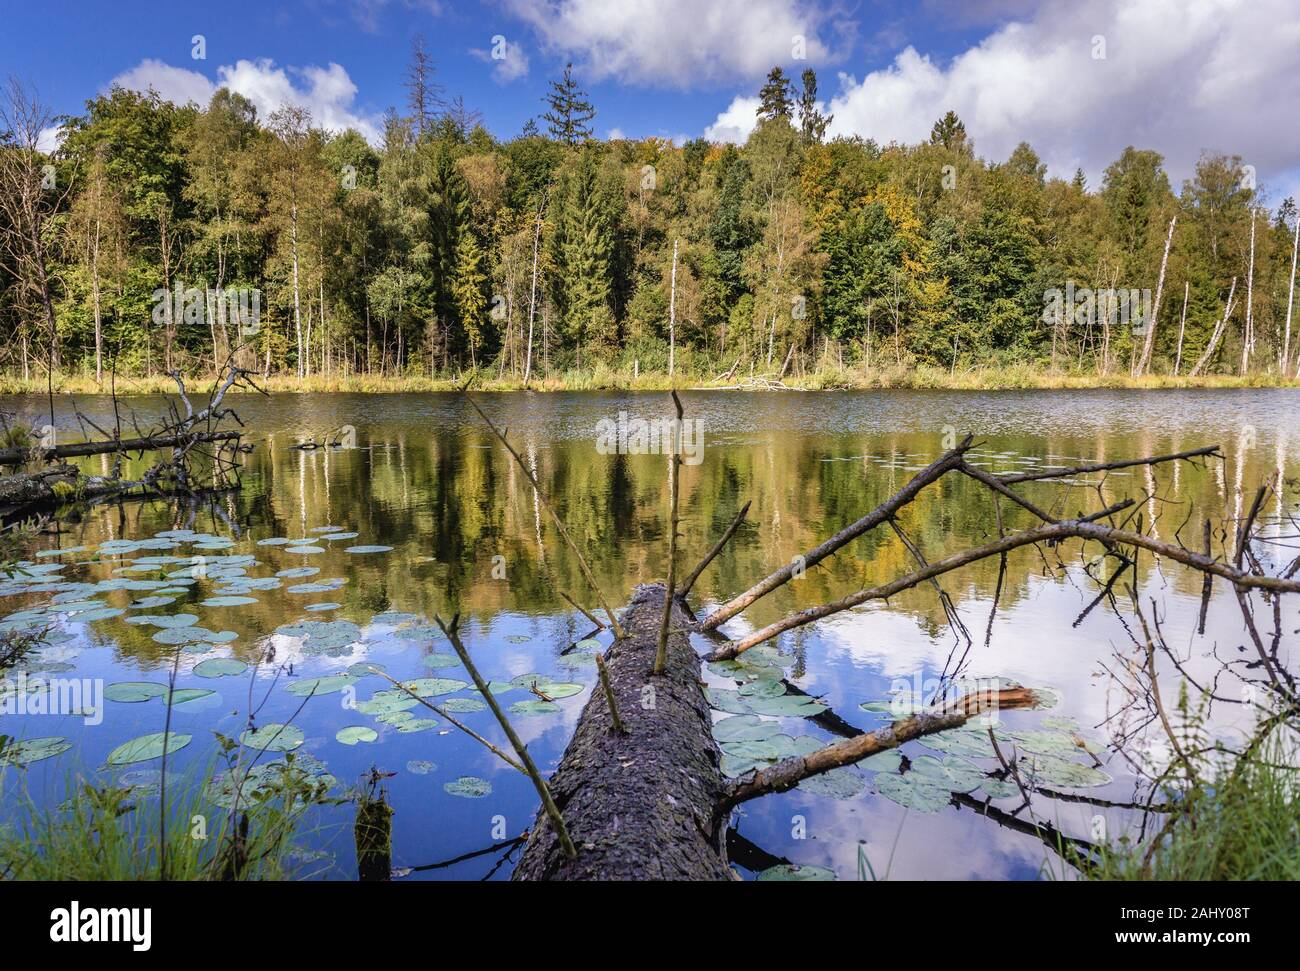 View on the Jezioro Francuskie (French Lake) Nature Reserve in Dylewo Hills Landscape Park, Ostroda County in Poland. Stock Photo